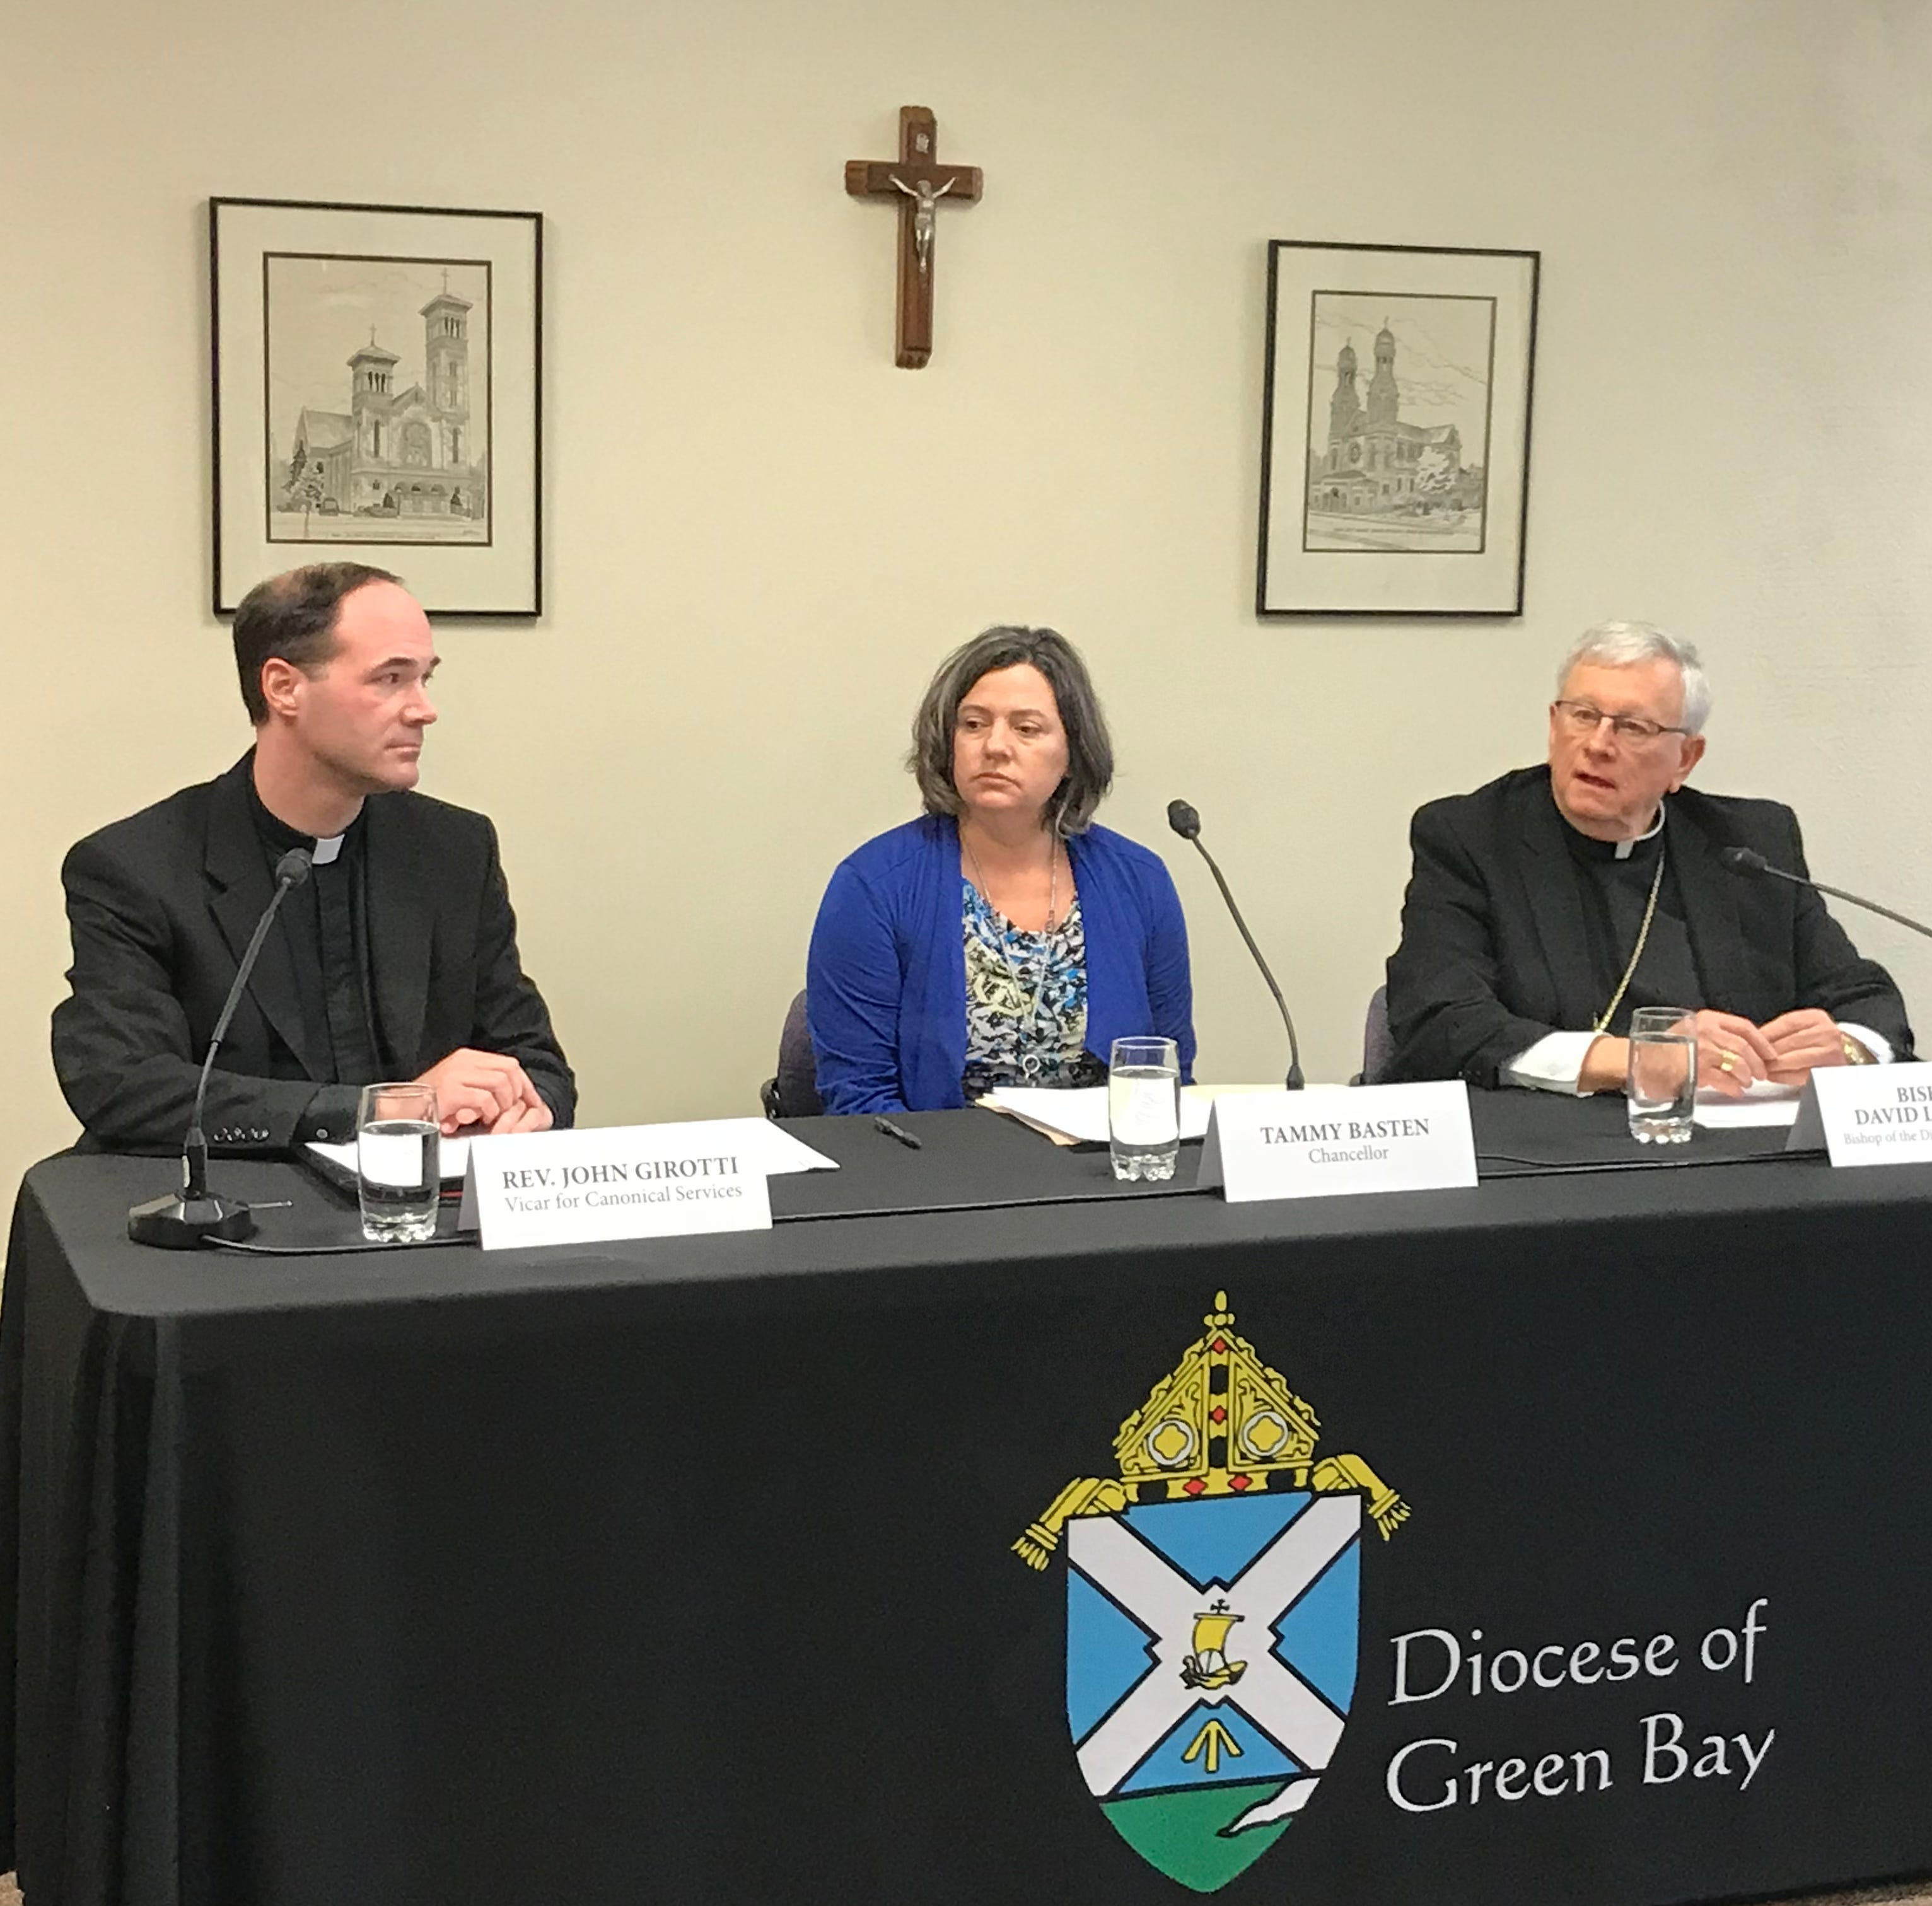 Name of bishop who mishandled clergy abuse removed from Green Bay cathedral building